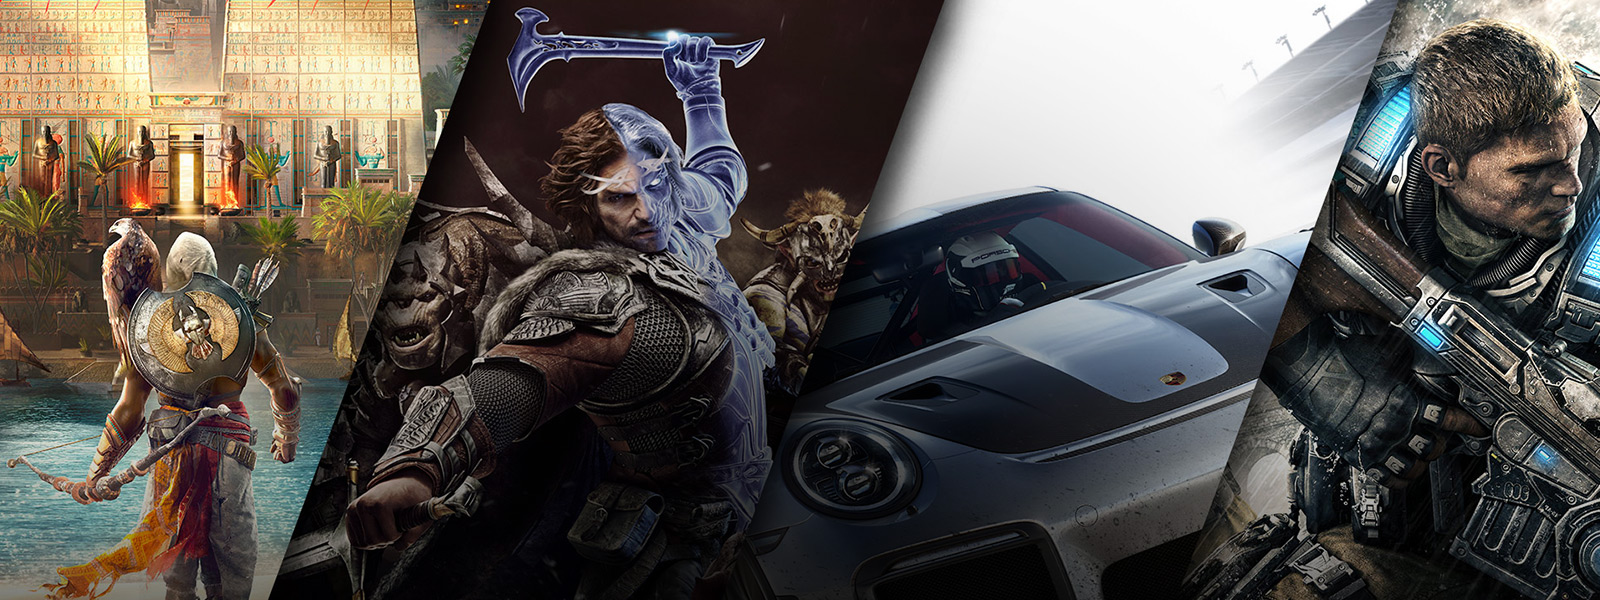 Colección de Assassin's Creed: Origins - Shadow of War - Forza 7 - Gears of War 4